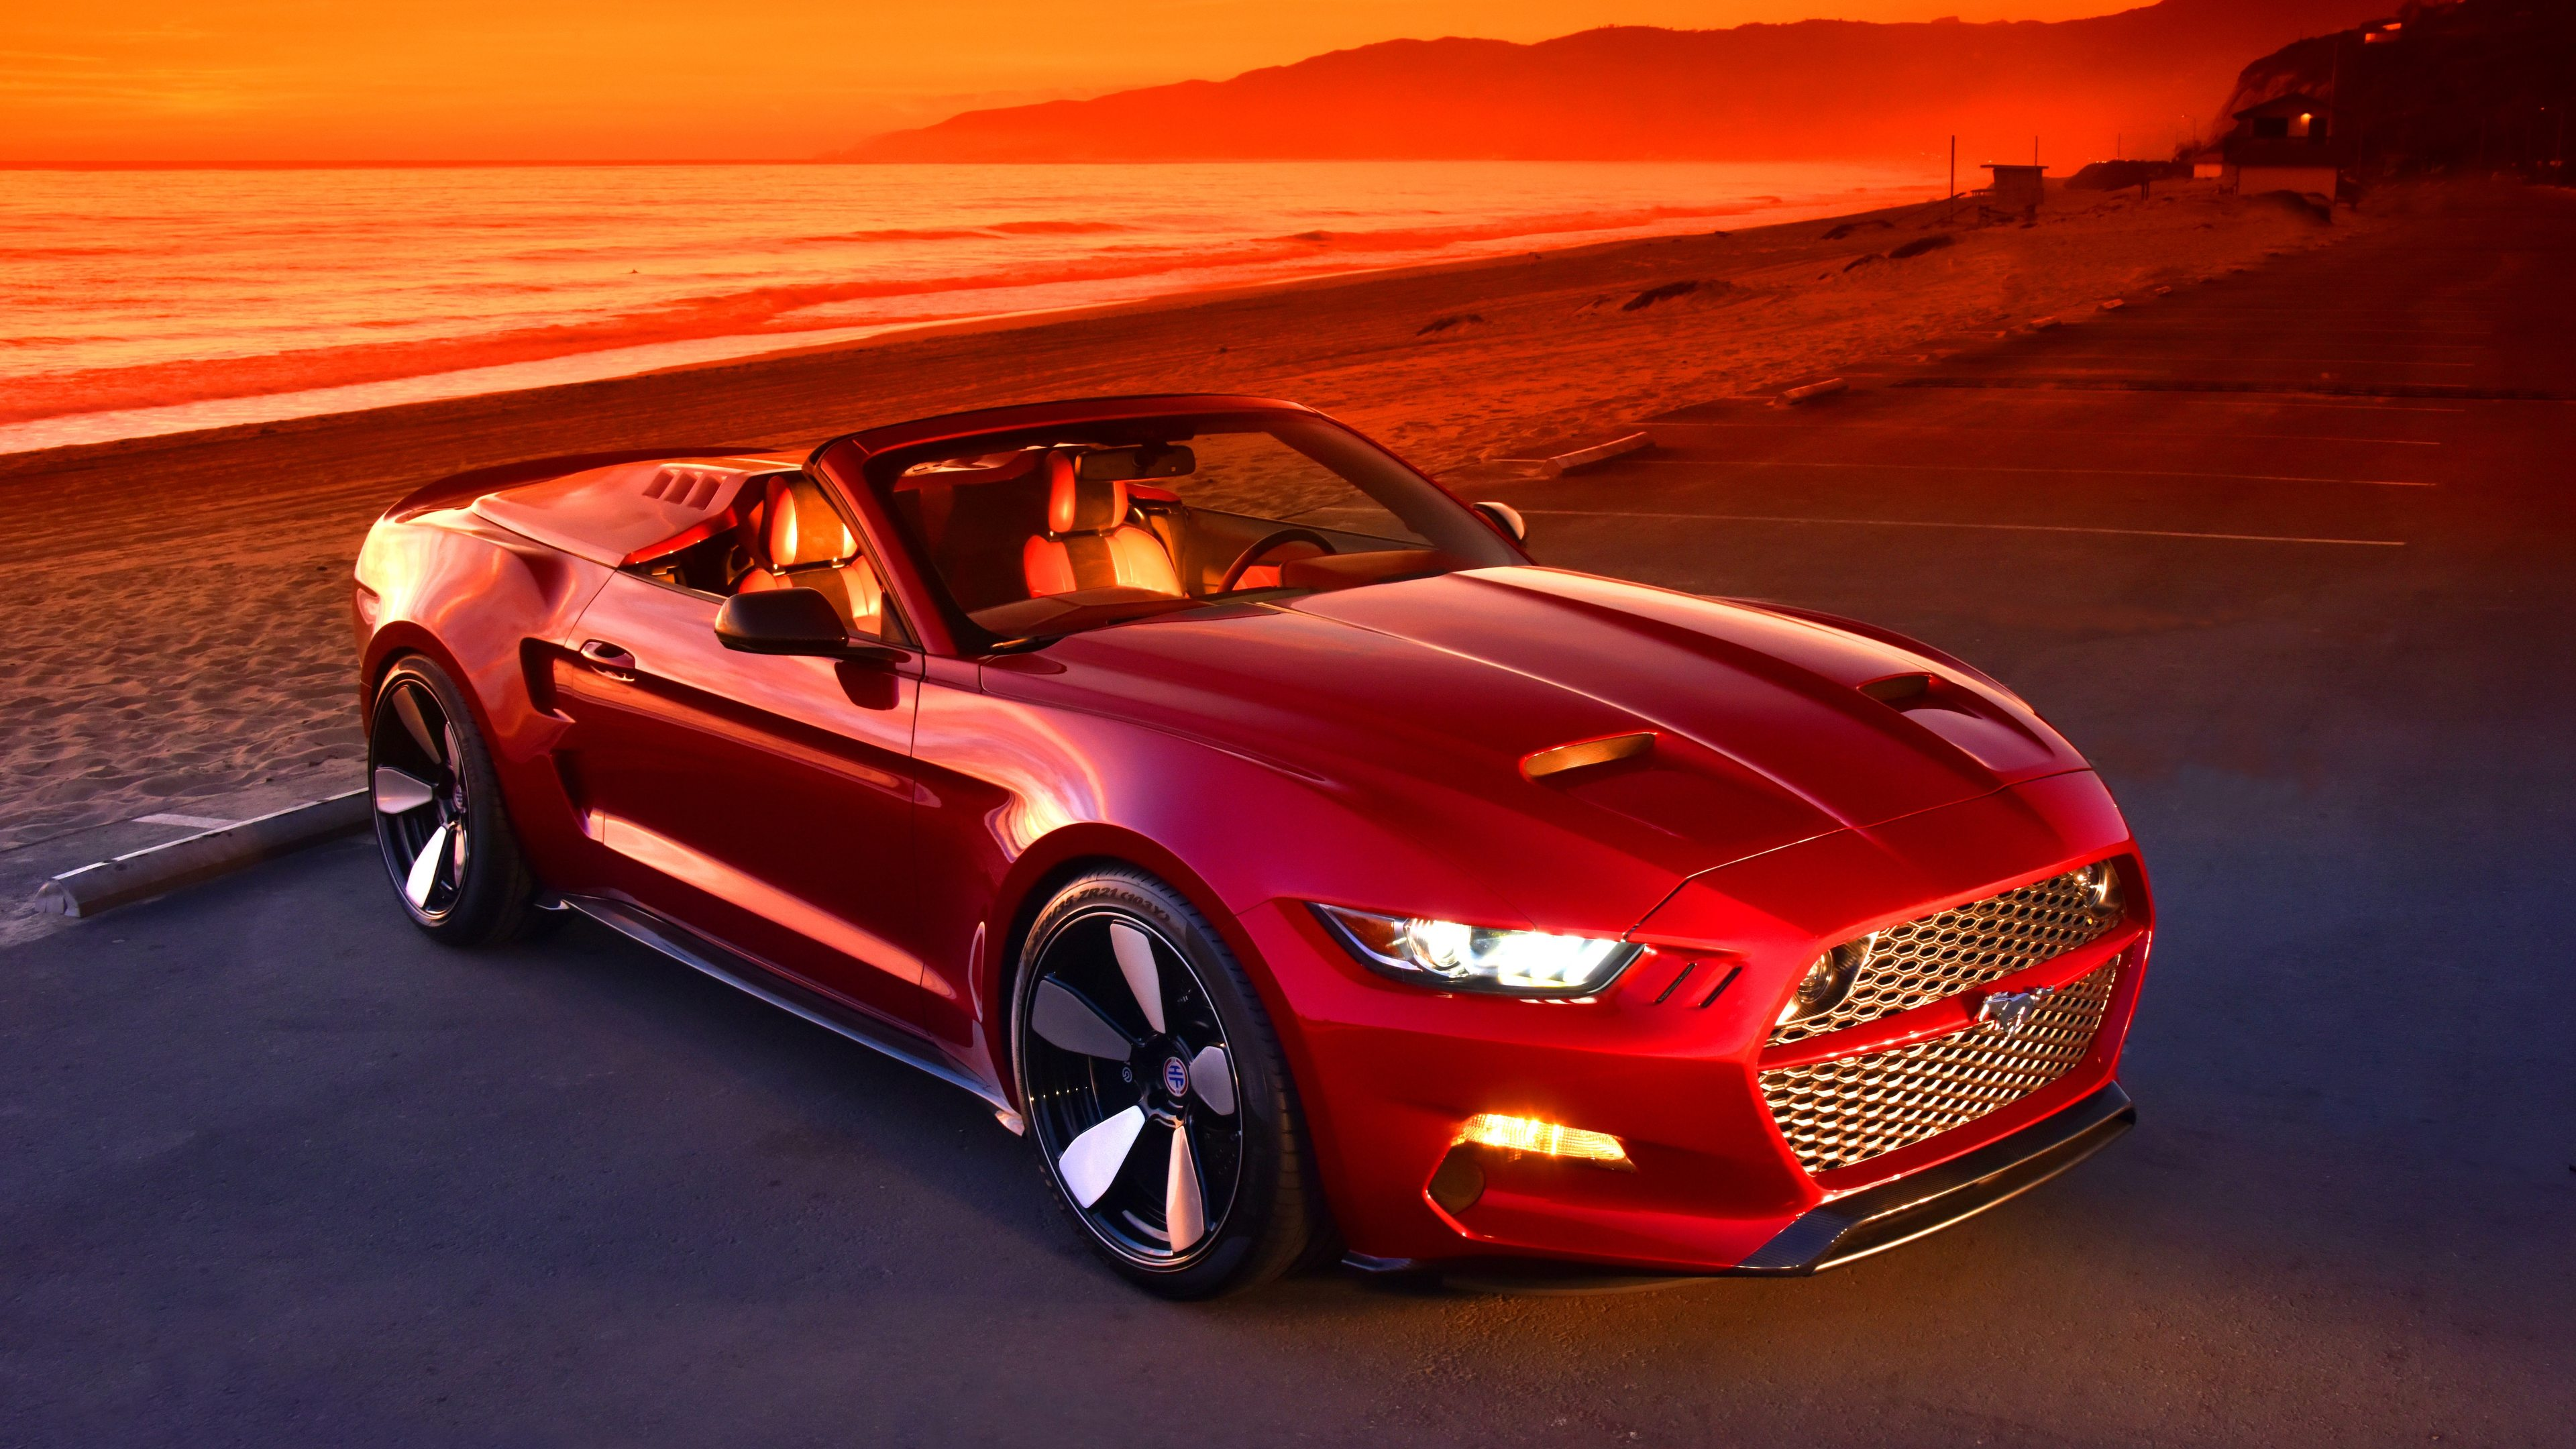 red mustang 5k 1539792936 - Red Mustang 5k - hd-wallpapers, ford mustang wallpapers, cars wallpapers, 5k wallpapers, 4k-wallpapers